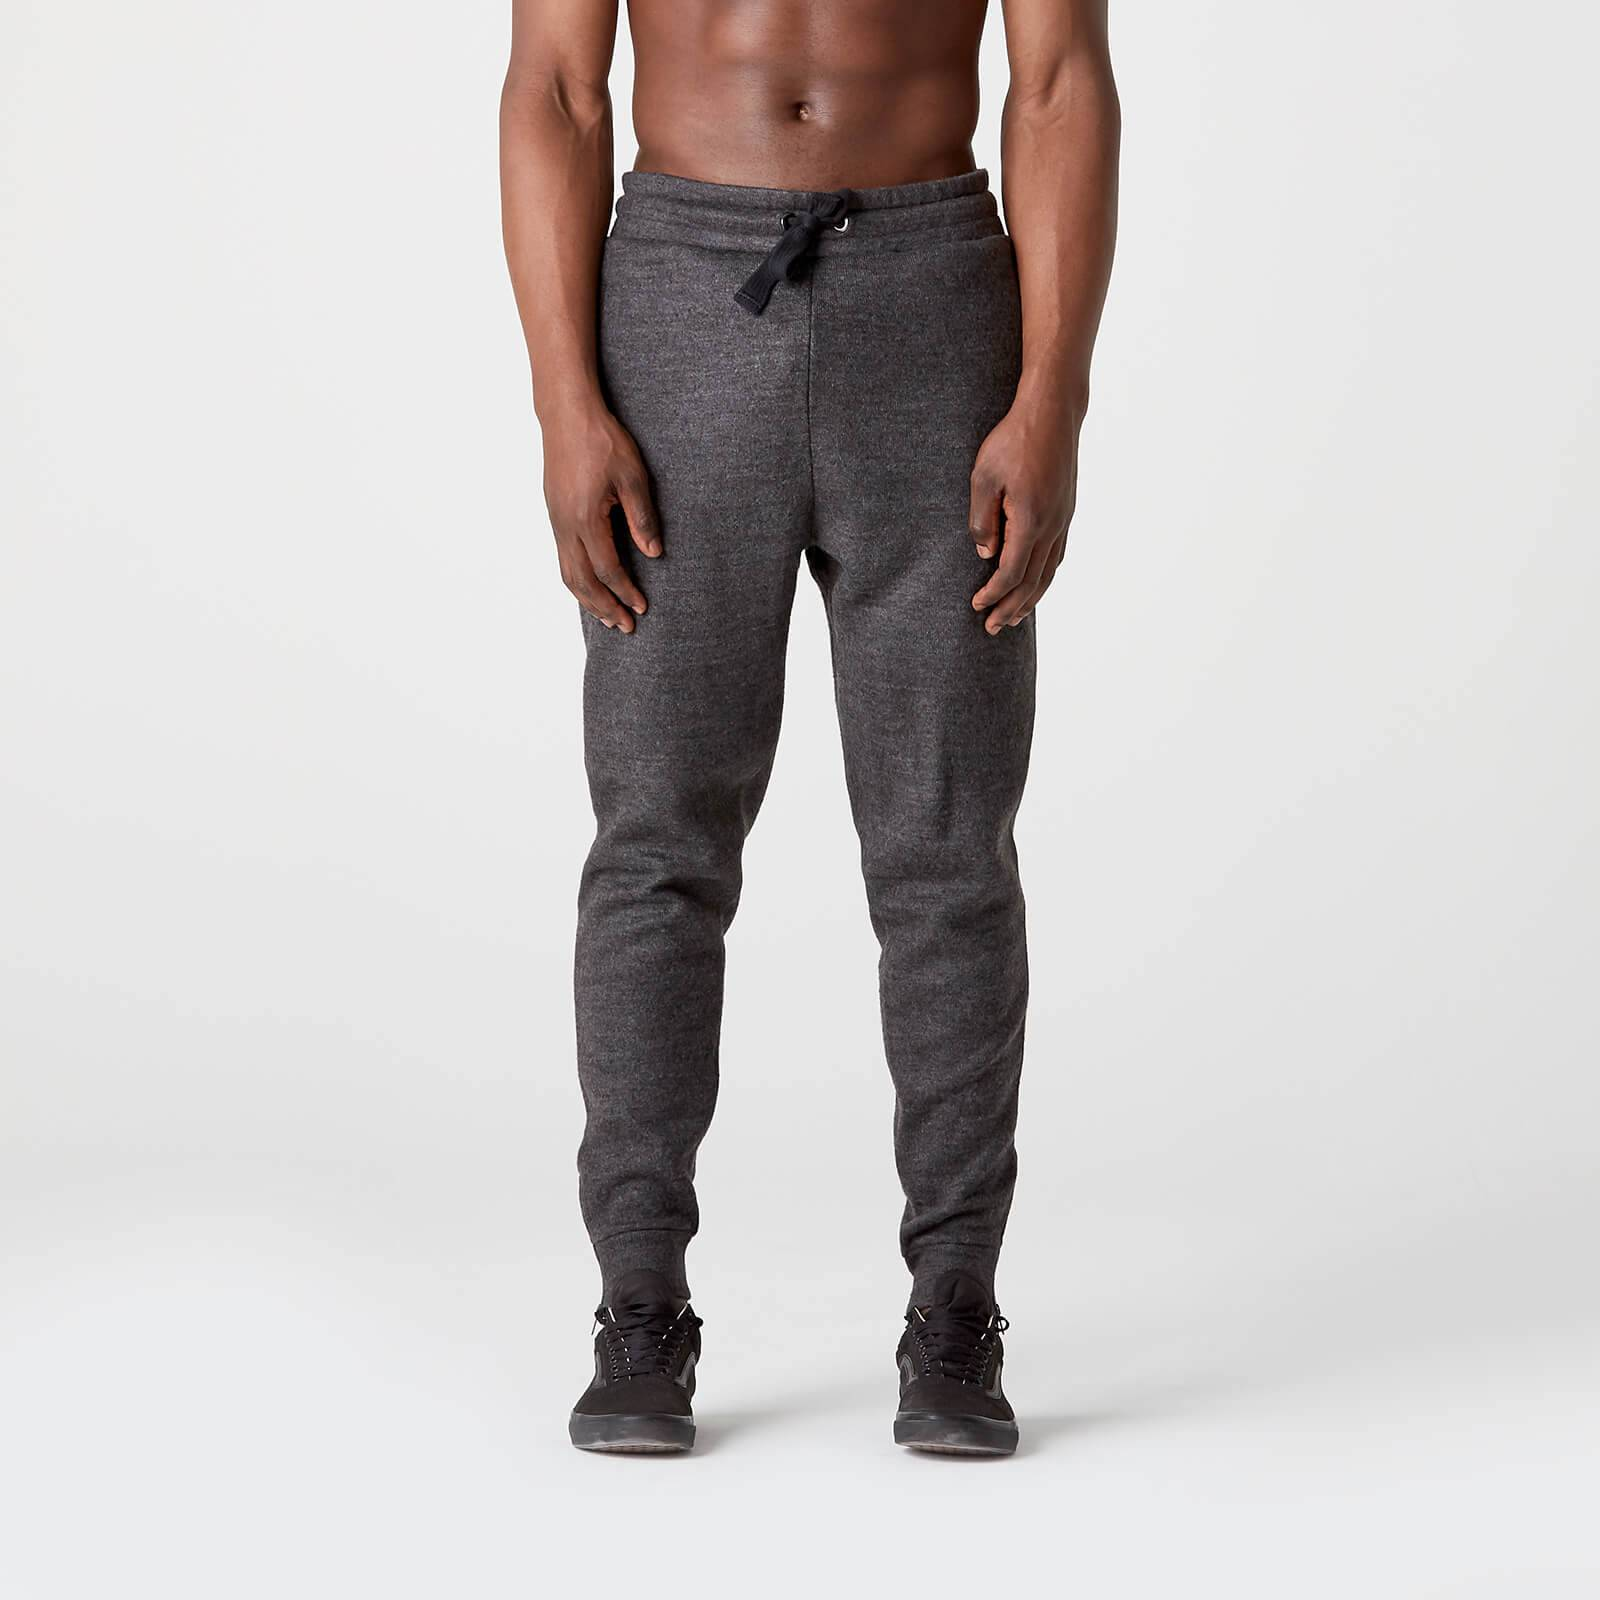 Myprotein Luxe Leisure Joggers - Slate - M